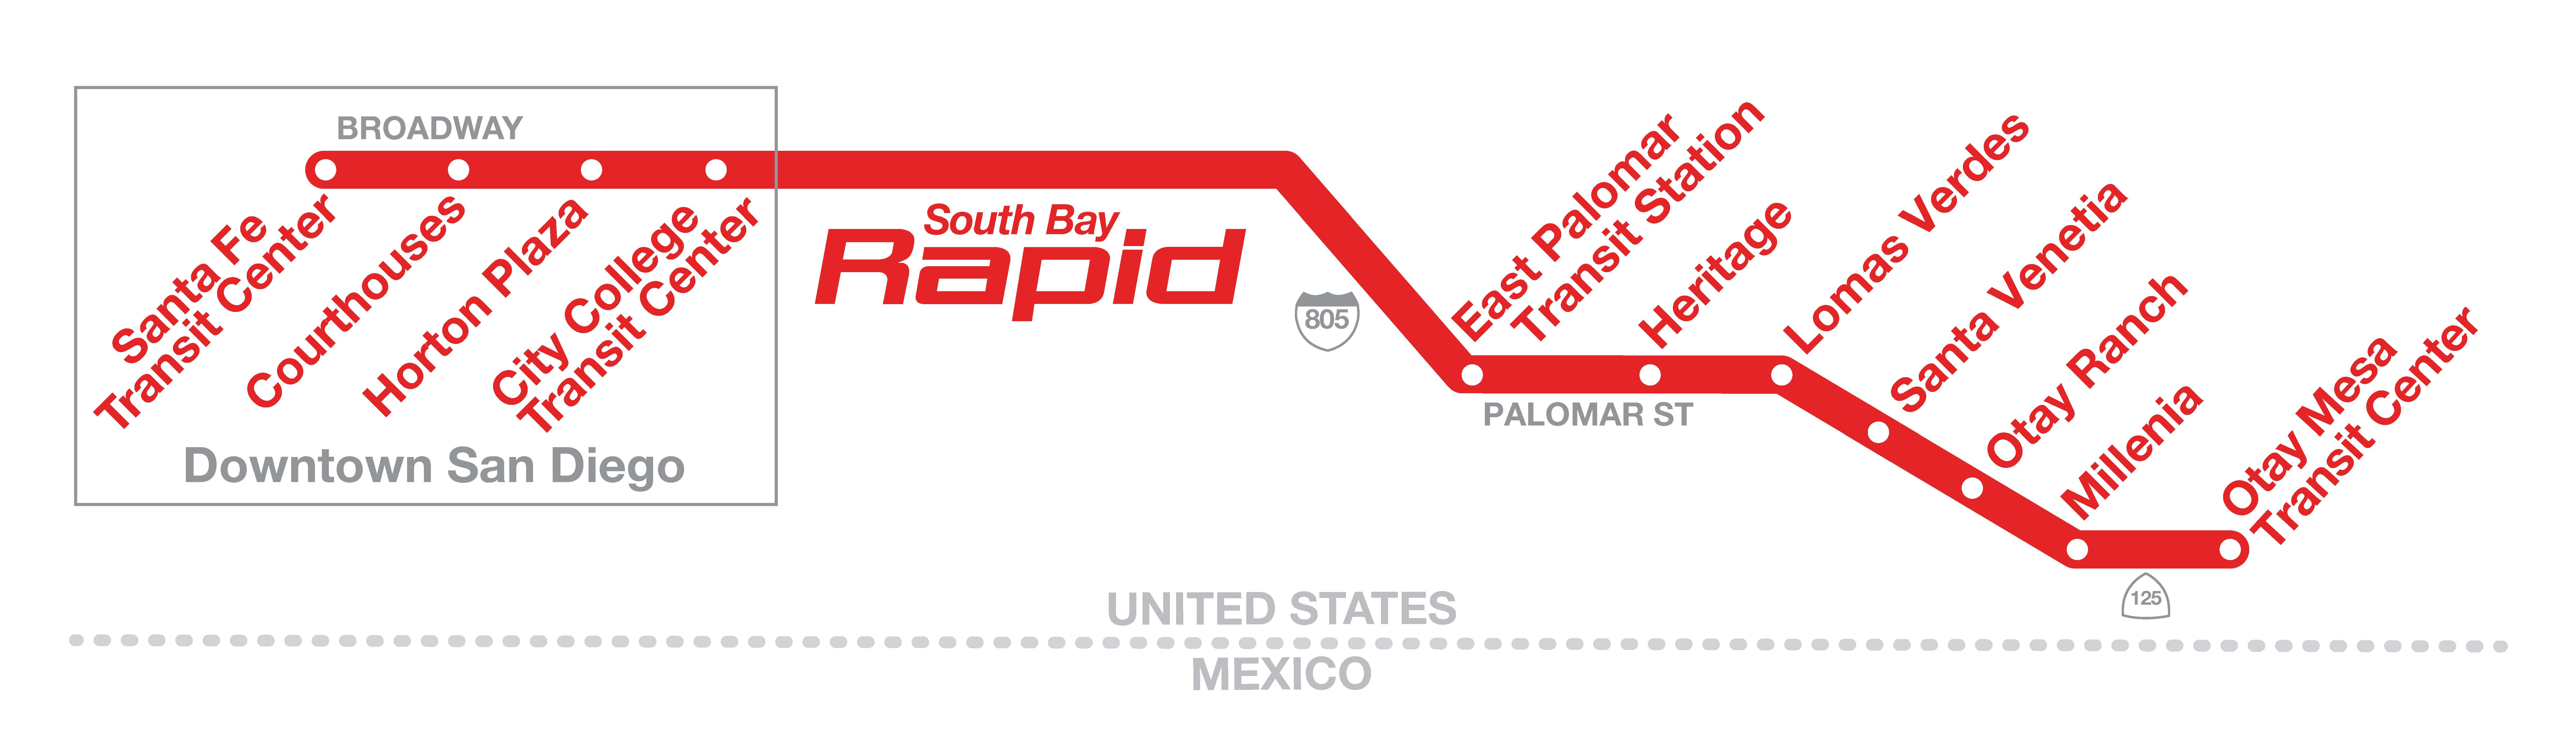 South Bay Rapid Route Map